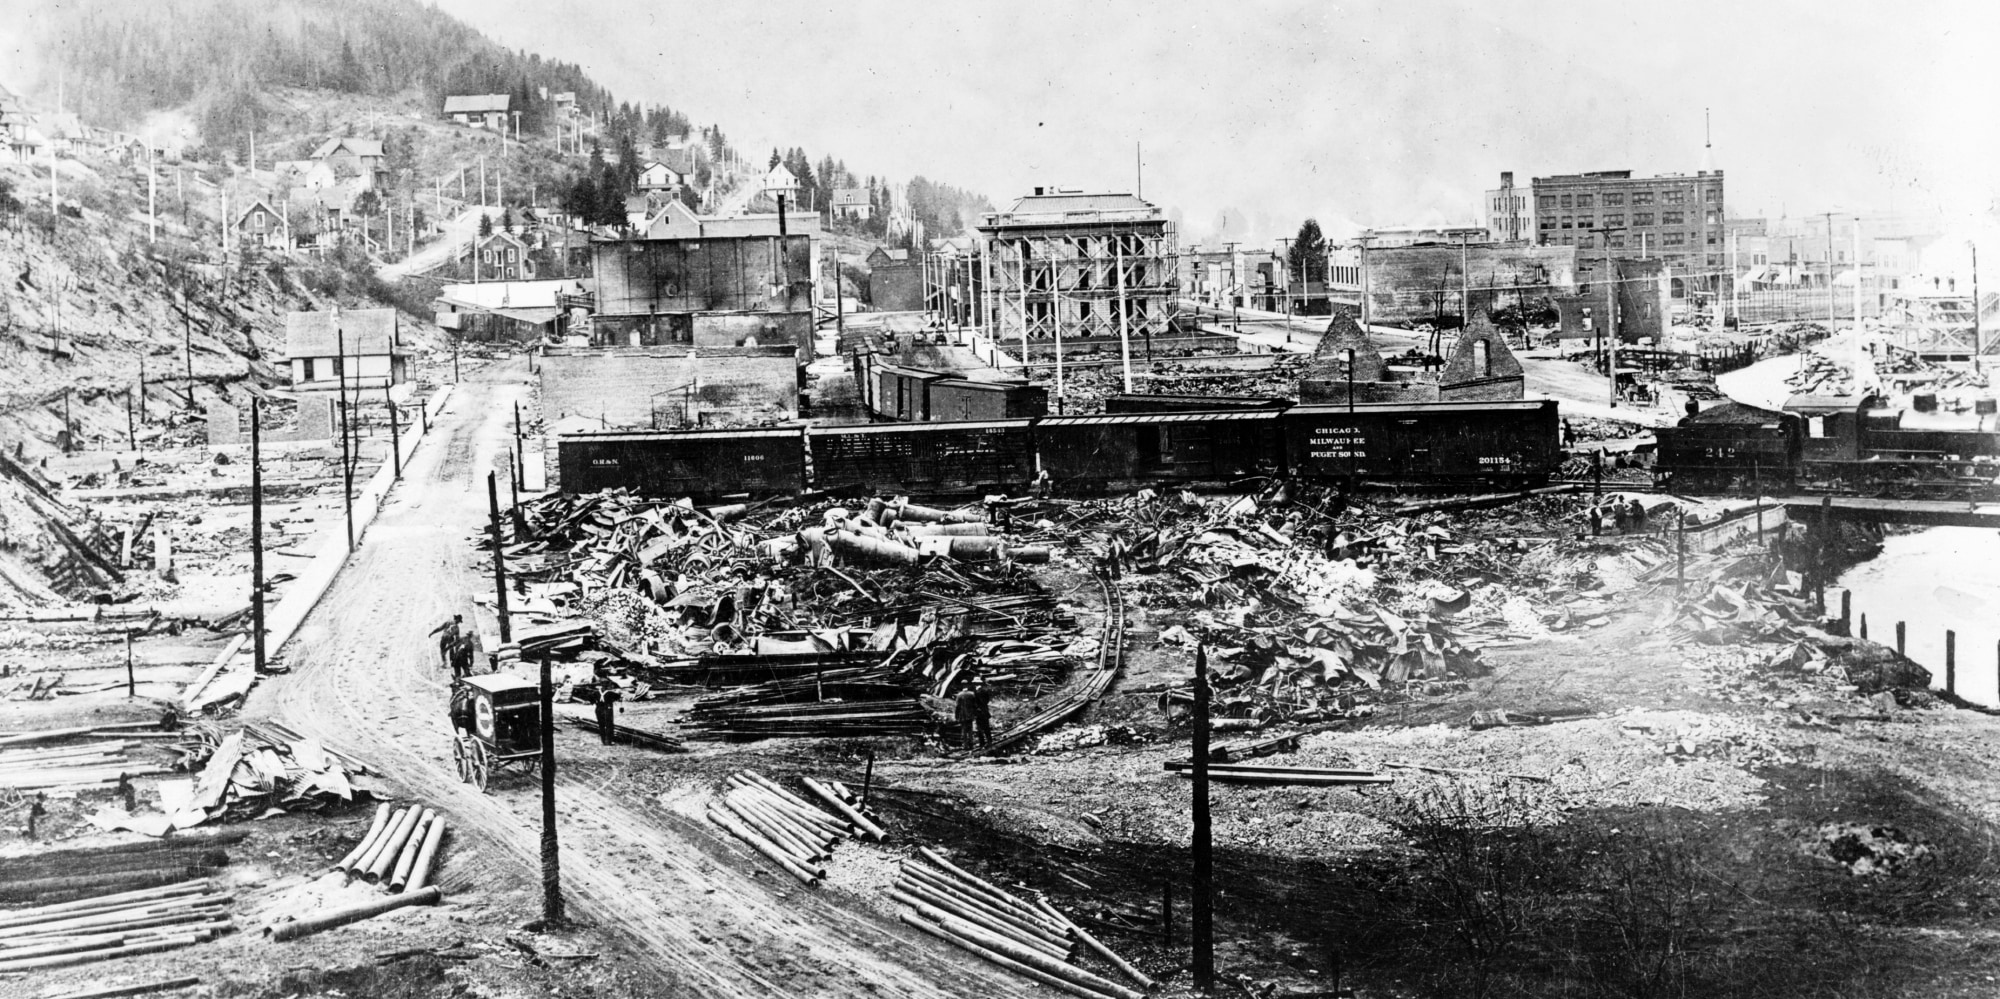 The Big Burn' of 1910 transformed wildland firefighting. Will 2020 do the same?